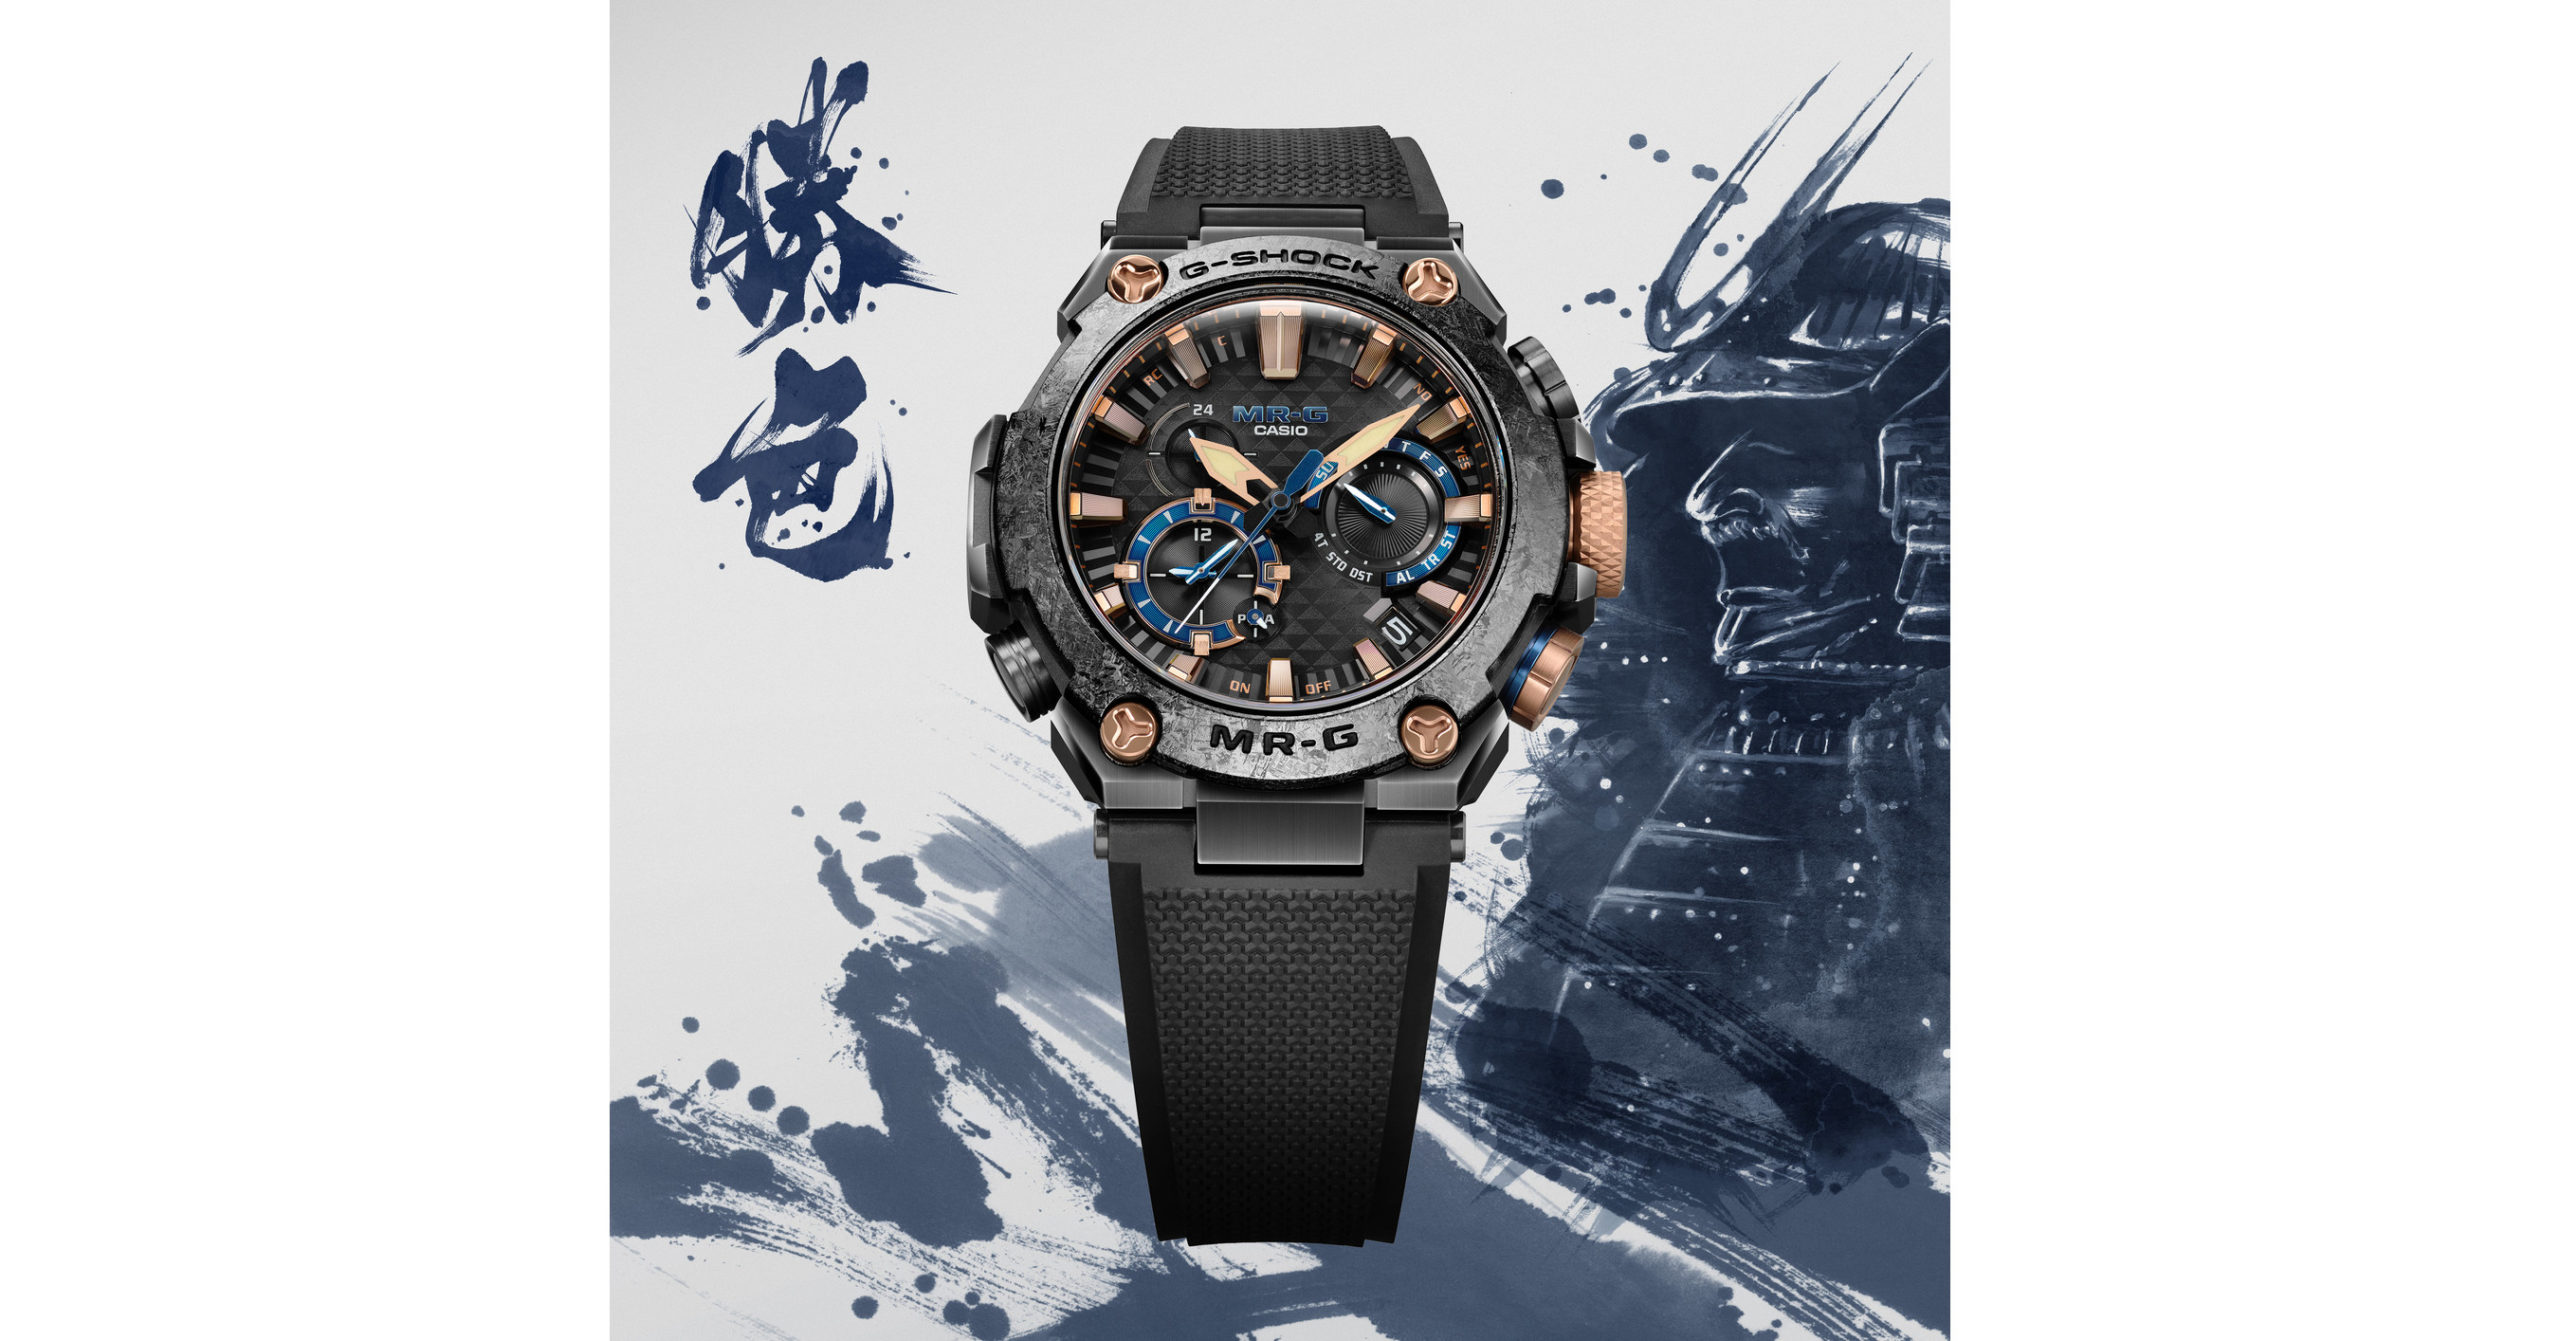 G-SHOCK Releases Limited Edition MR-G Timepieces Inspired by Kachi-iro, the Japanese Color to Win - PRNewswire